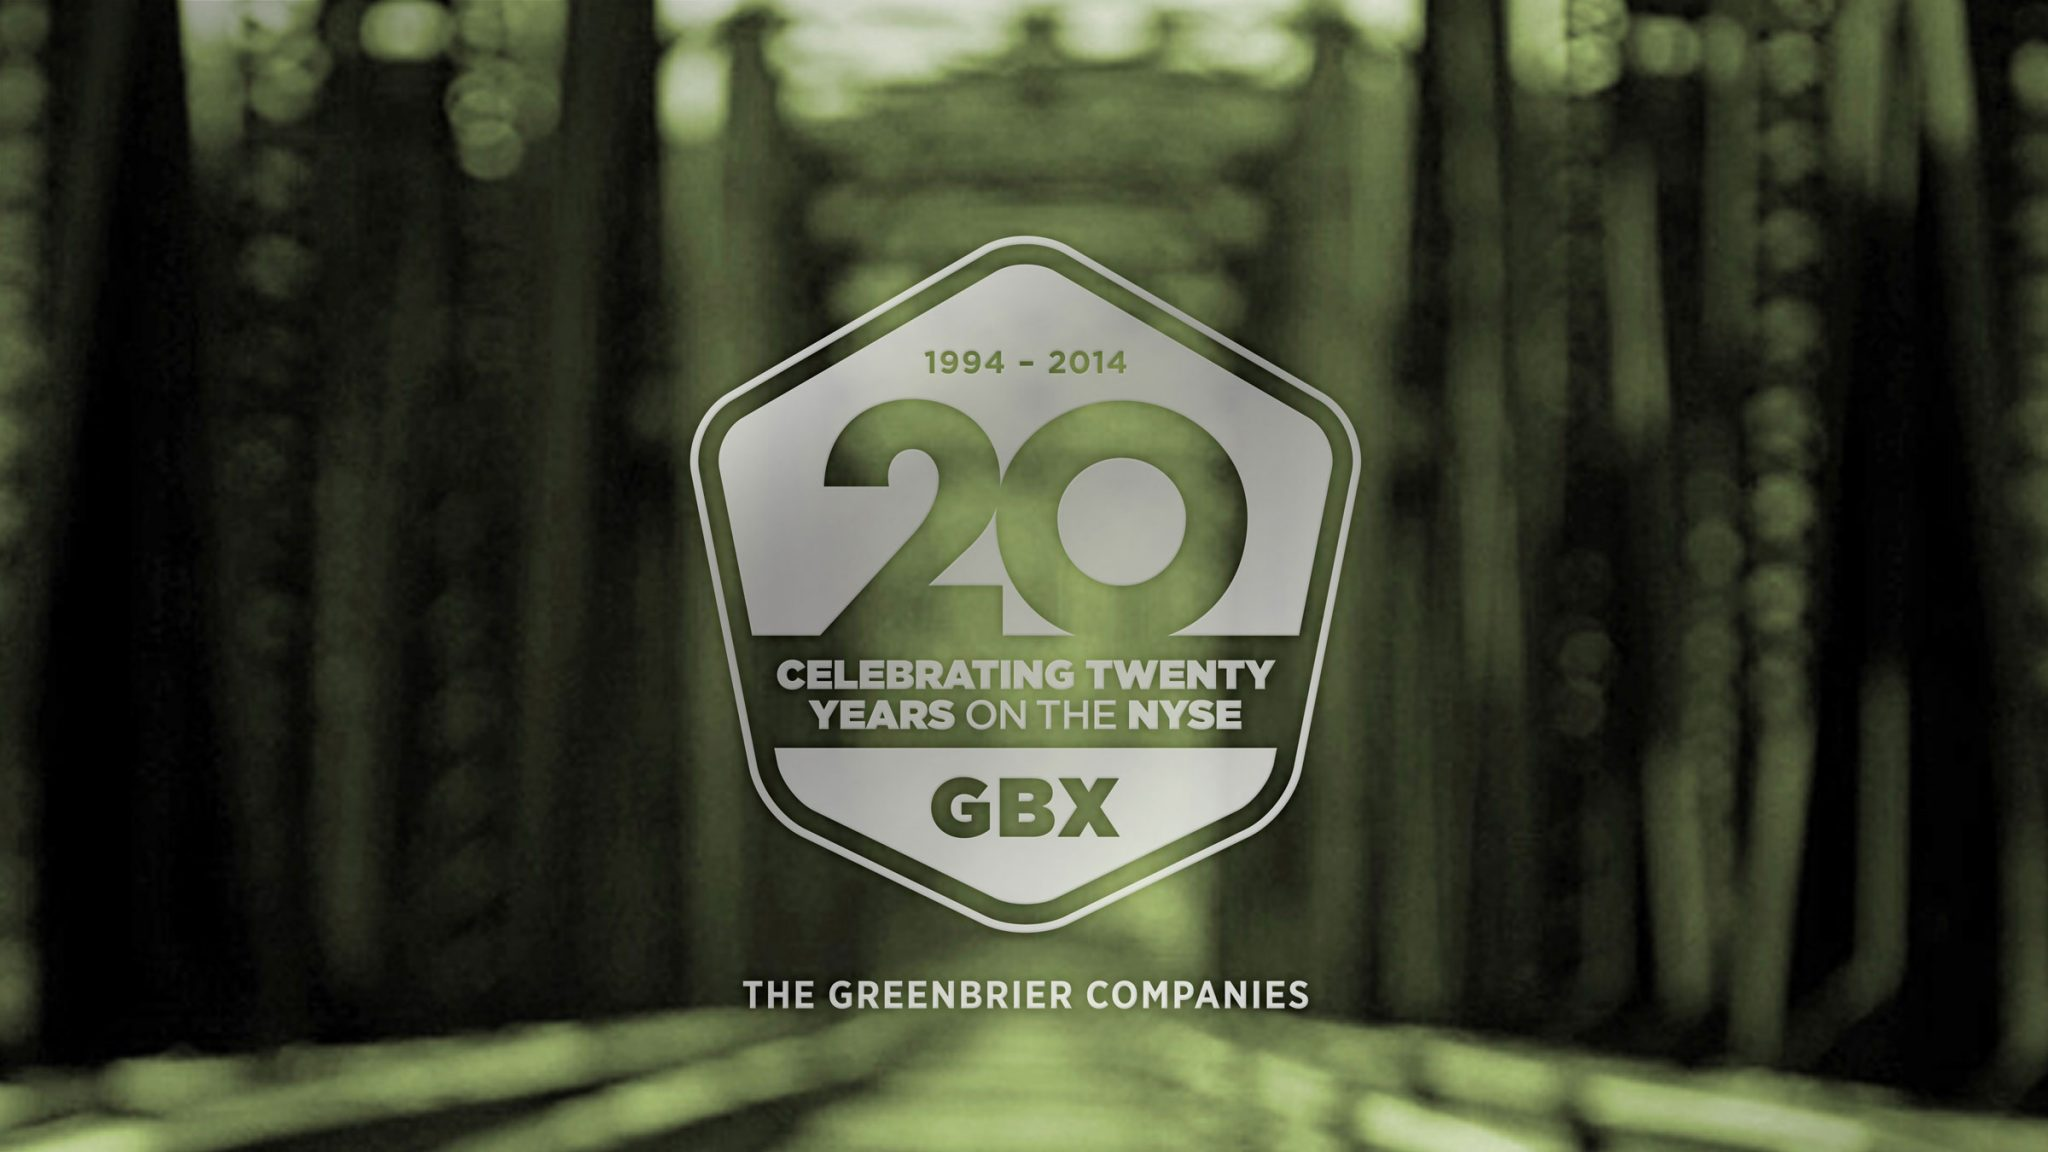 Greenbrier Celebrates 20 years of trading on the NYSE